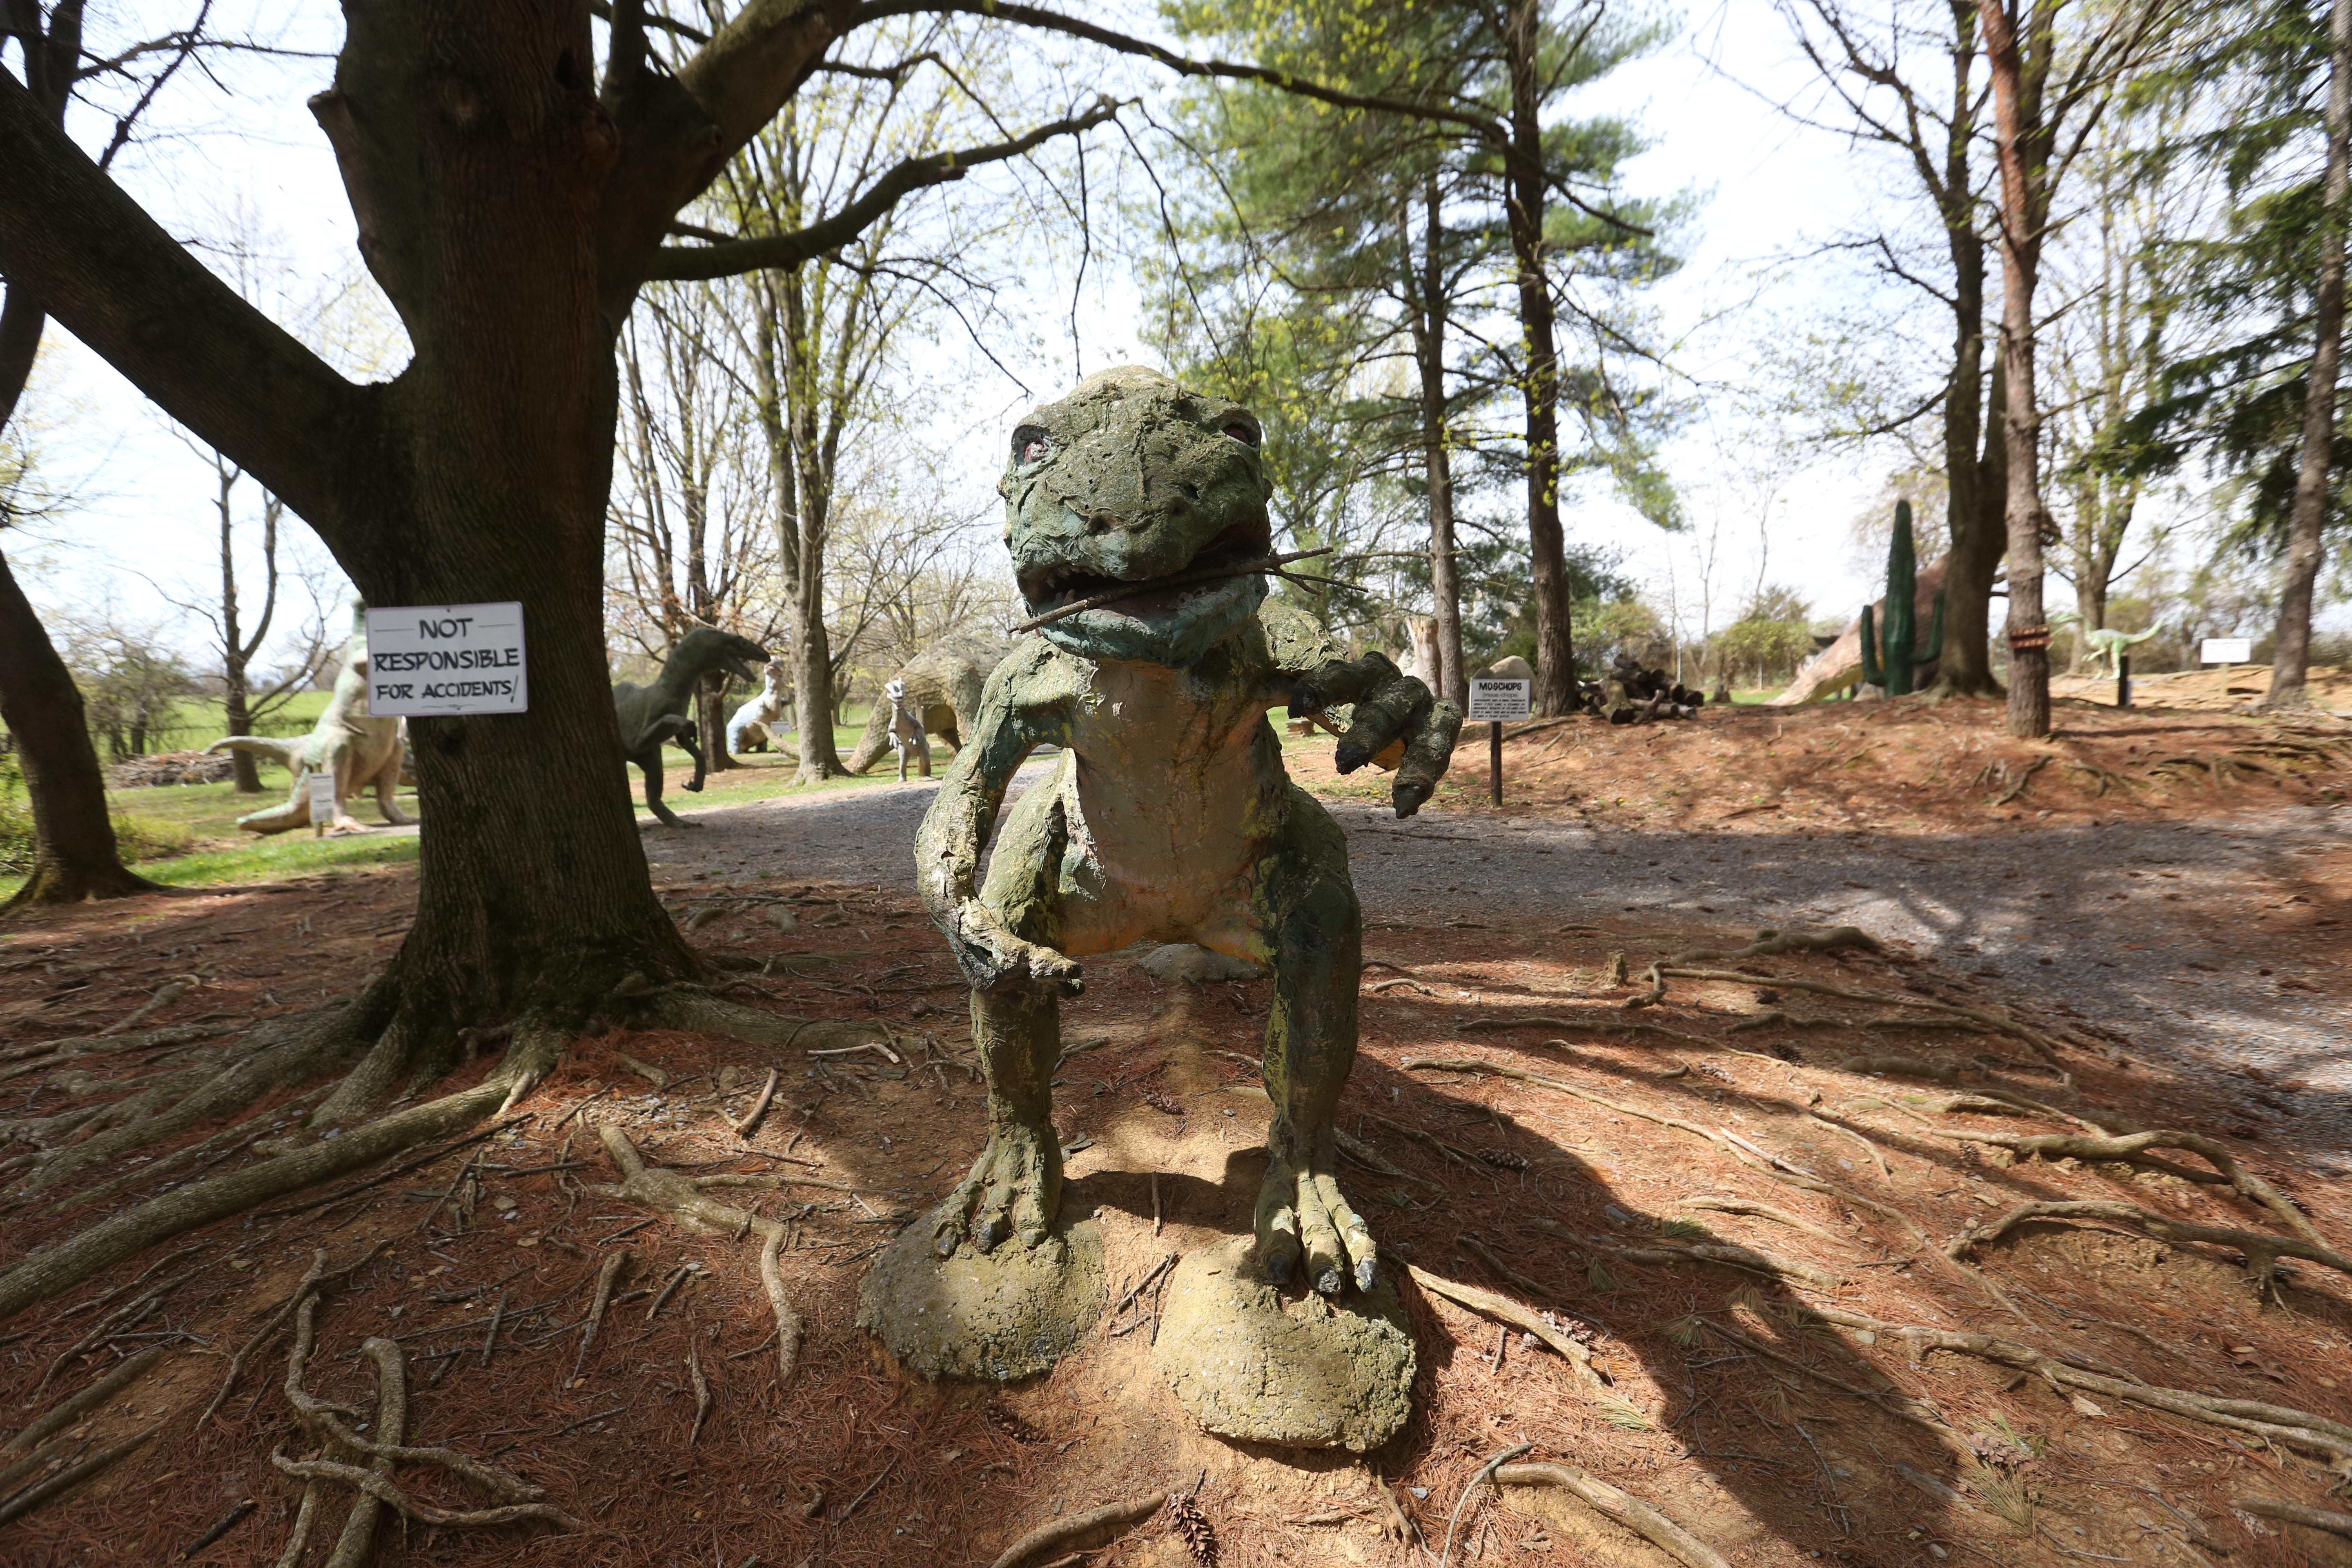 White Plains, Virginia, is home to the delightfully kitschy Dinosaur Land, a roadside mainstay off of route 522. The gift shop and mini-theme park features over 50 dinosaurs that its owners have accumulated since its opening in 1963. Some of the dinos aren't in great shape, but this mom-and-pop stop makes you feel like you've stepped back a few decades to a simpler time. (Amanda Andrade-Rhoades/DC Refined)